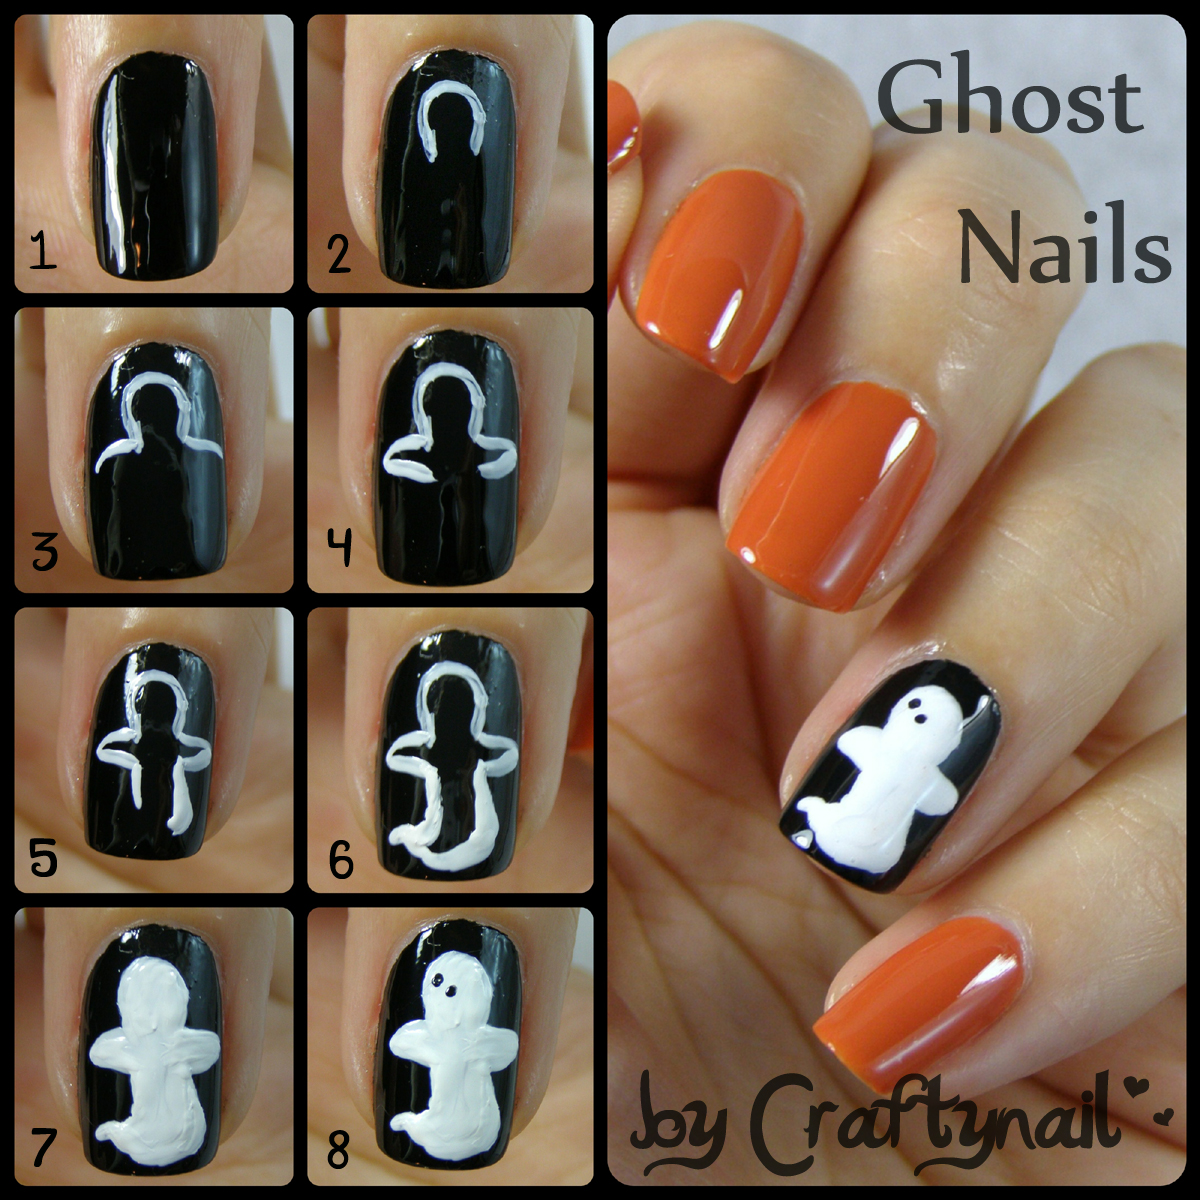 ghost_nails_tutorial - Ghost Nail Art Craftynail